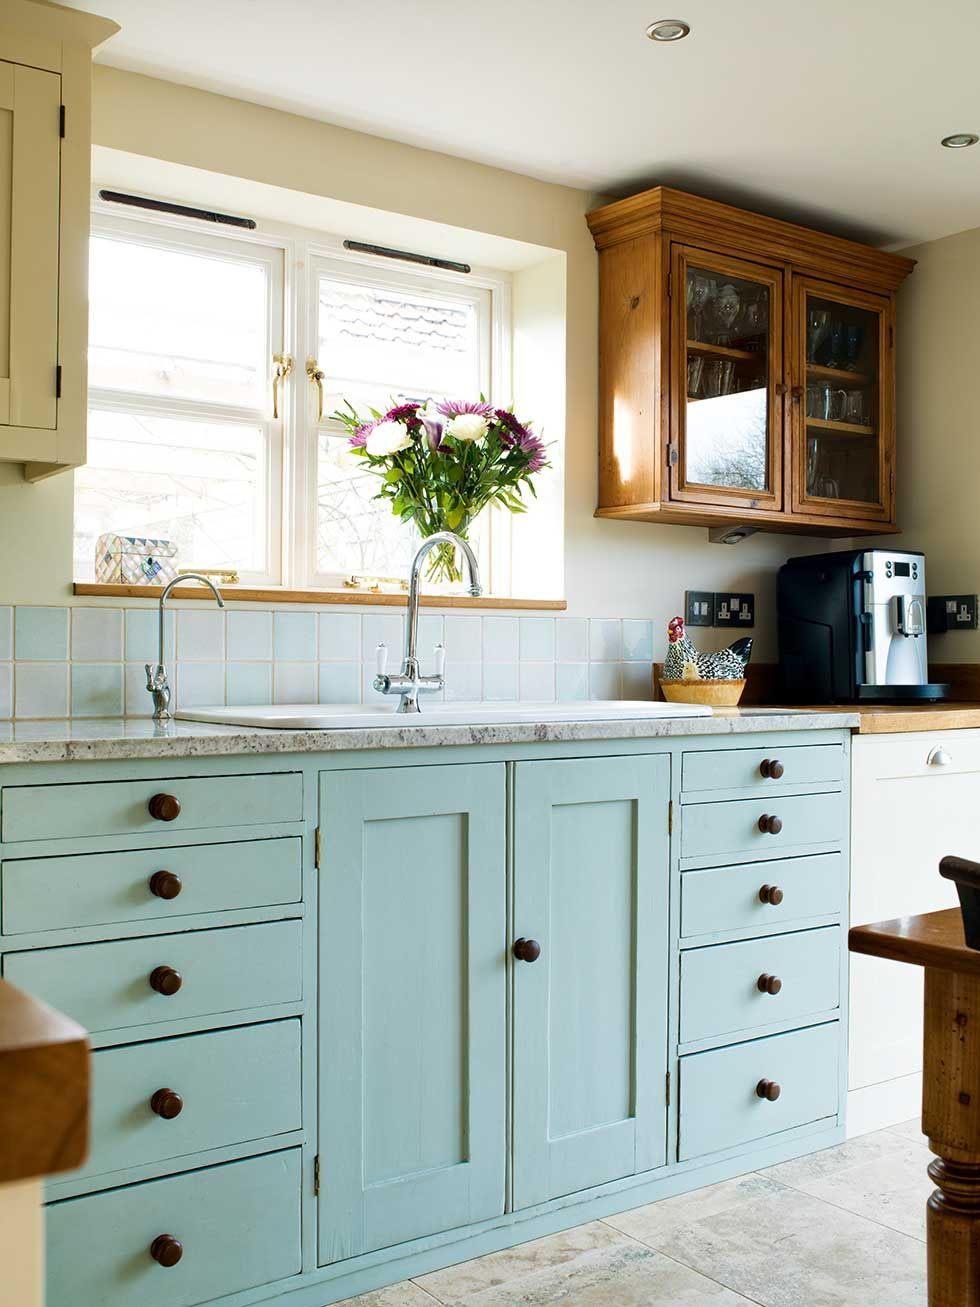 Angela Hart and Richard Rush filled their extended kitchen space ...